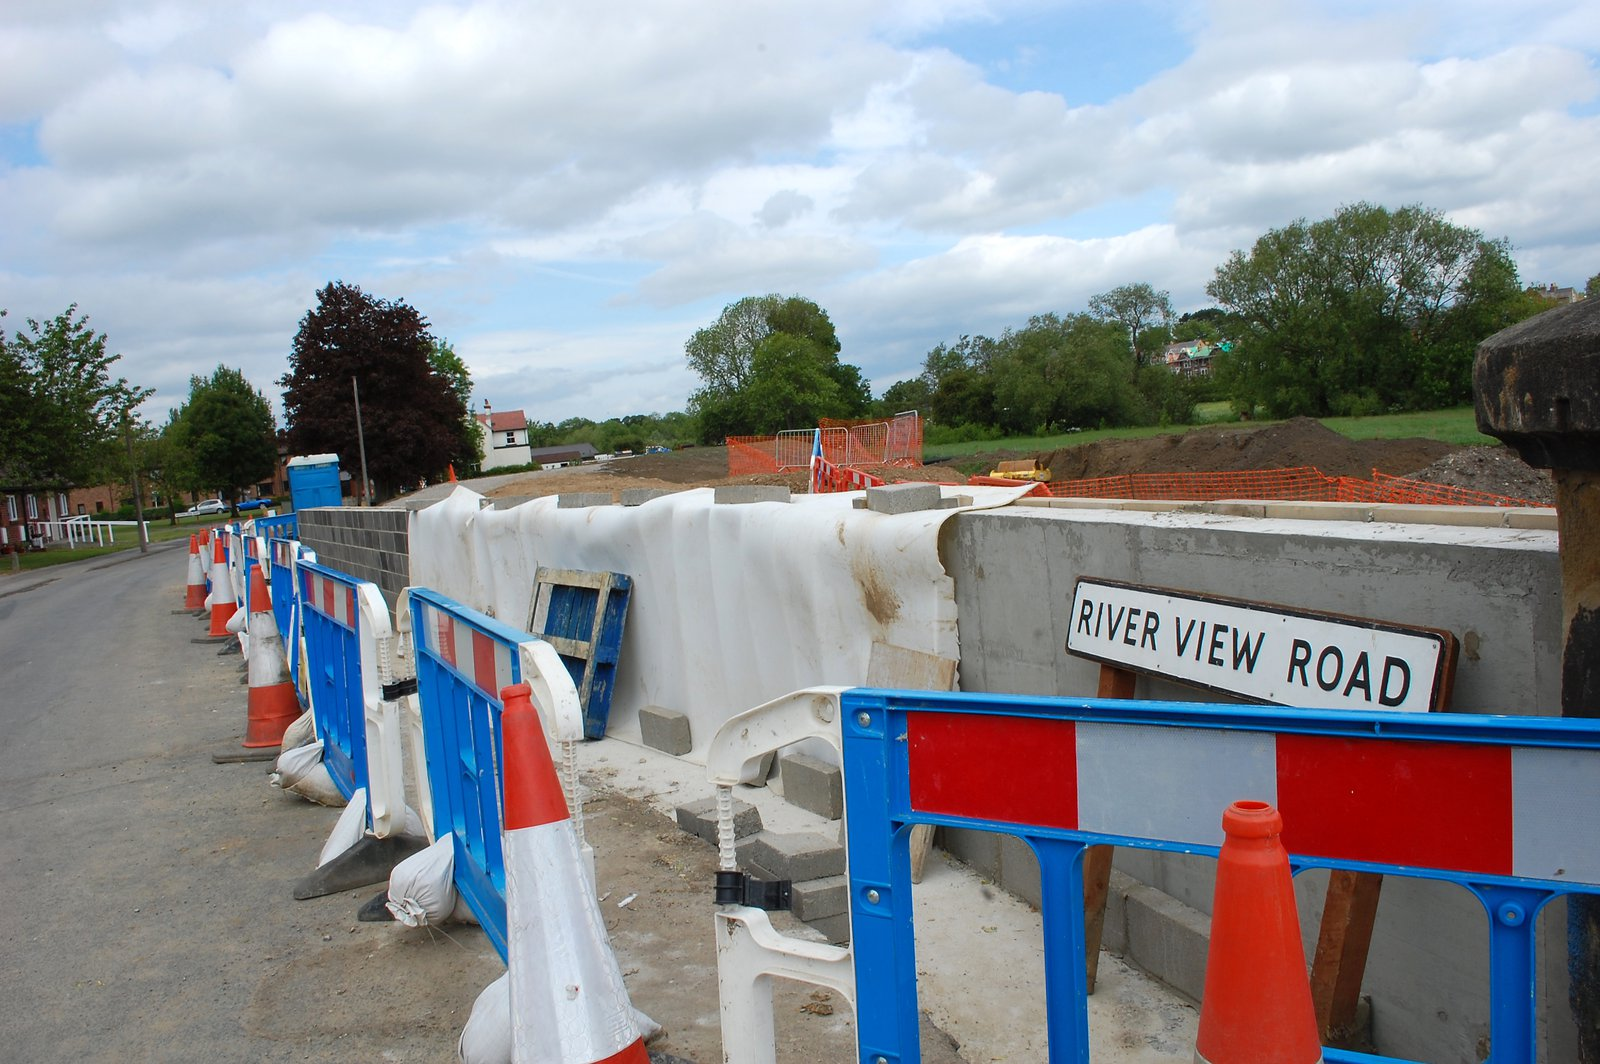 Barriers By New River Wall On River View Road (not much of a view now!)